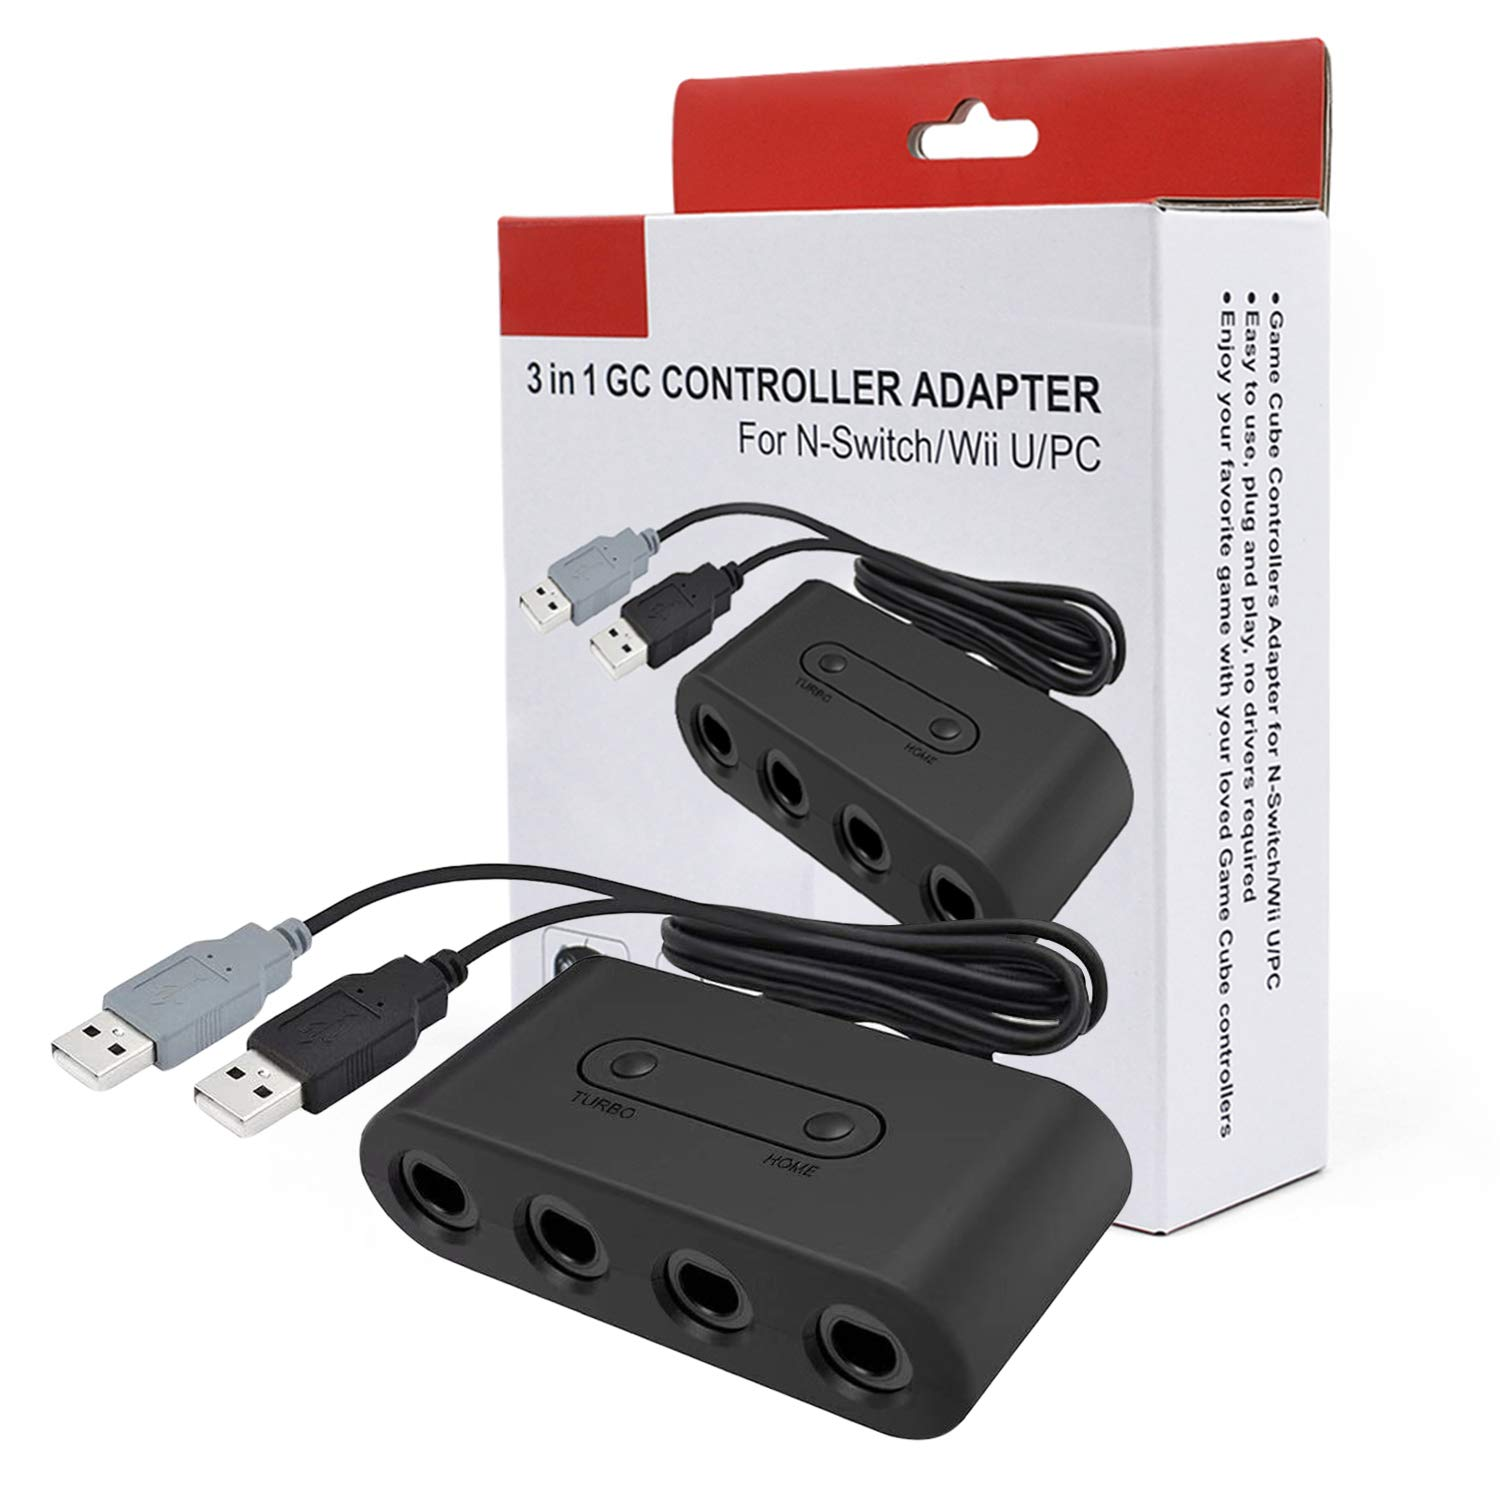 3 In 1 Gc To Wii U Pc Switch Converter Ngc Controller Adapter Game Cube Computer Cable Converter Supplies Consumer Electronics Video Games